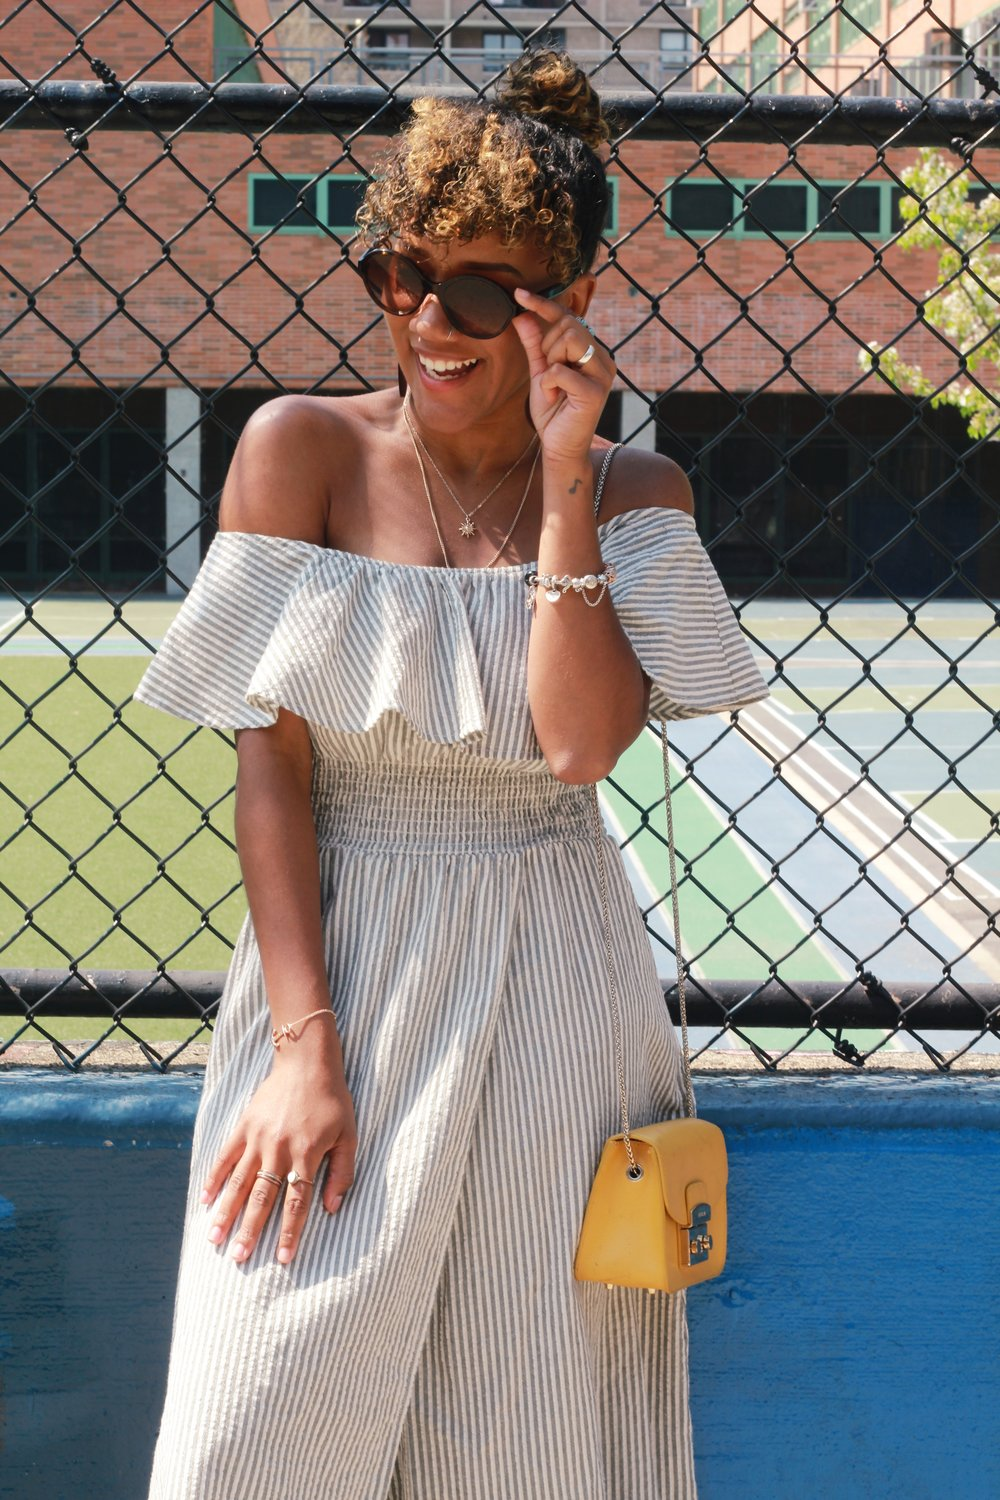 Dress: Zara; Sunglasses: Chanel; Necklace: Forever21; Bracelet (Left): Paul Hewitt; Bracelet (Right): Pandora; Purse: Furla; Photography by Nikki Price